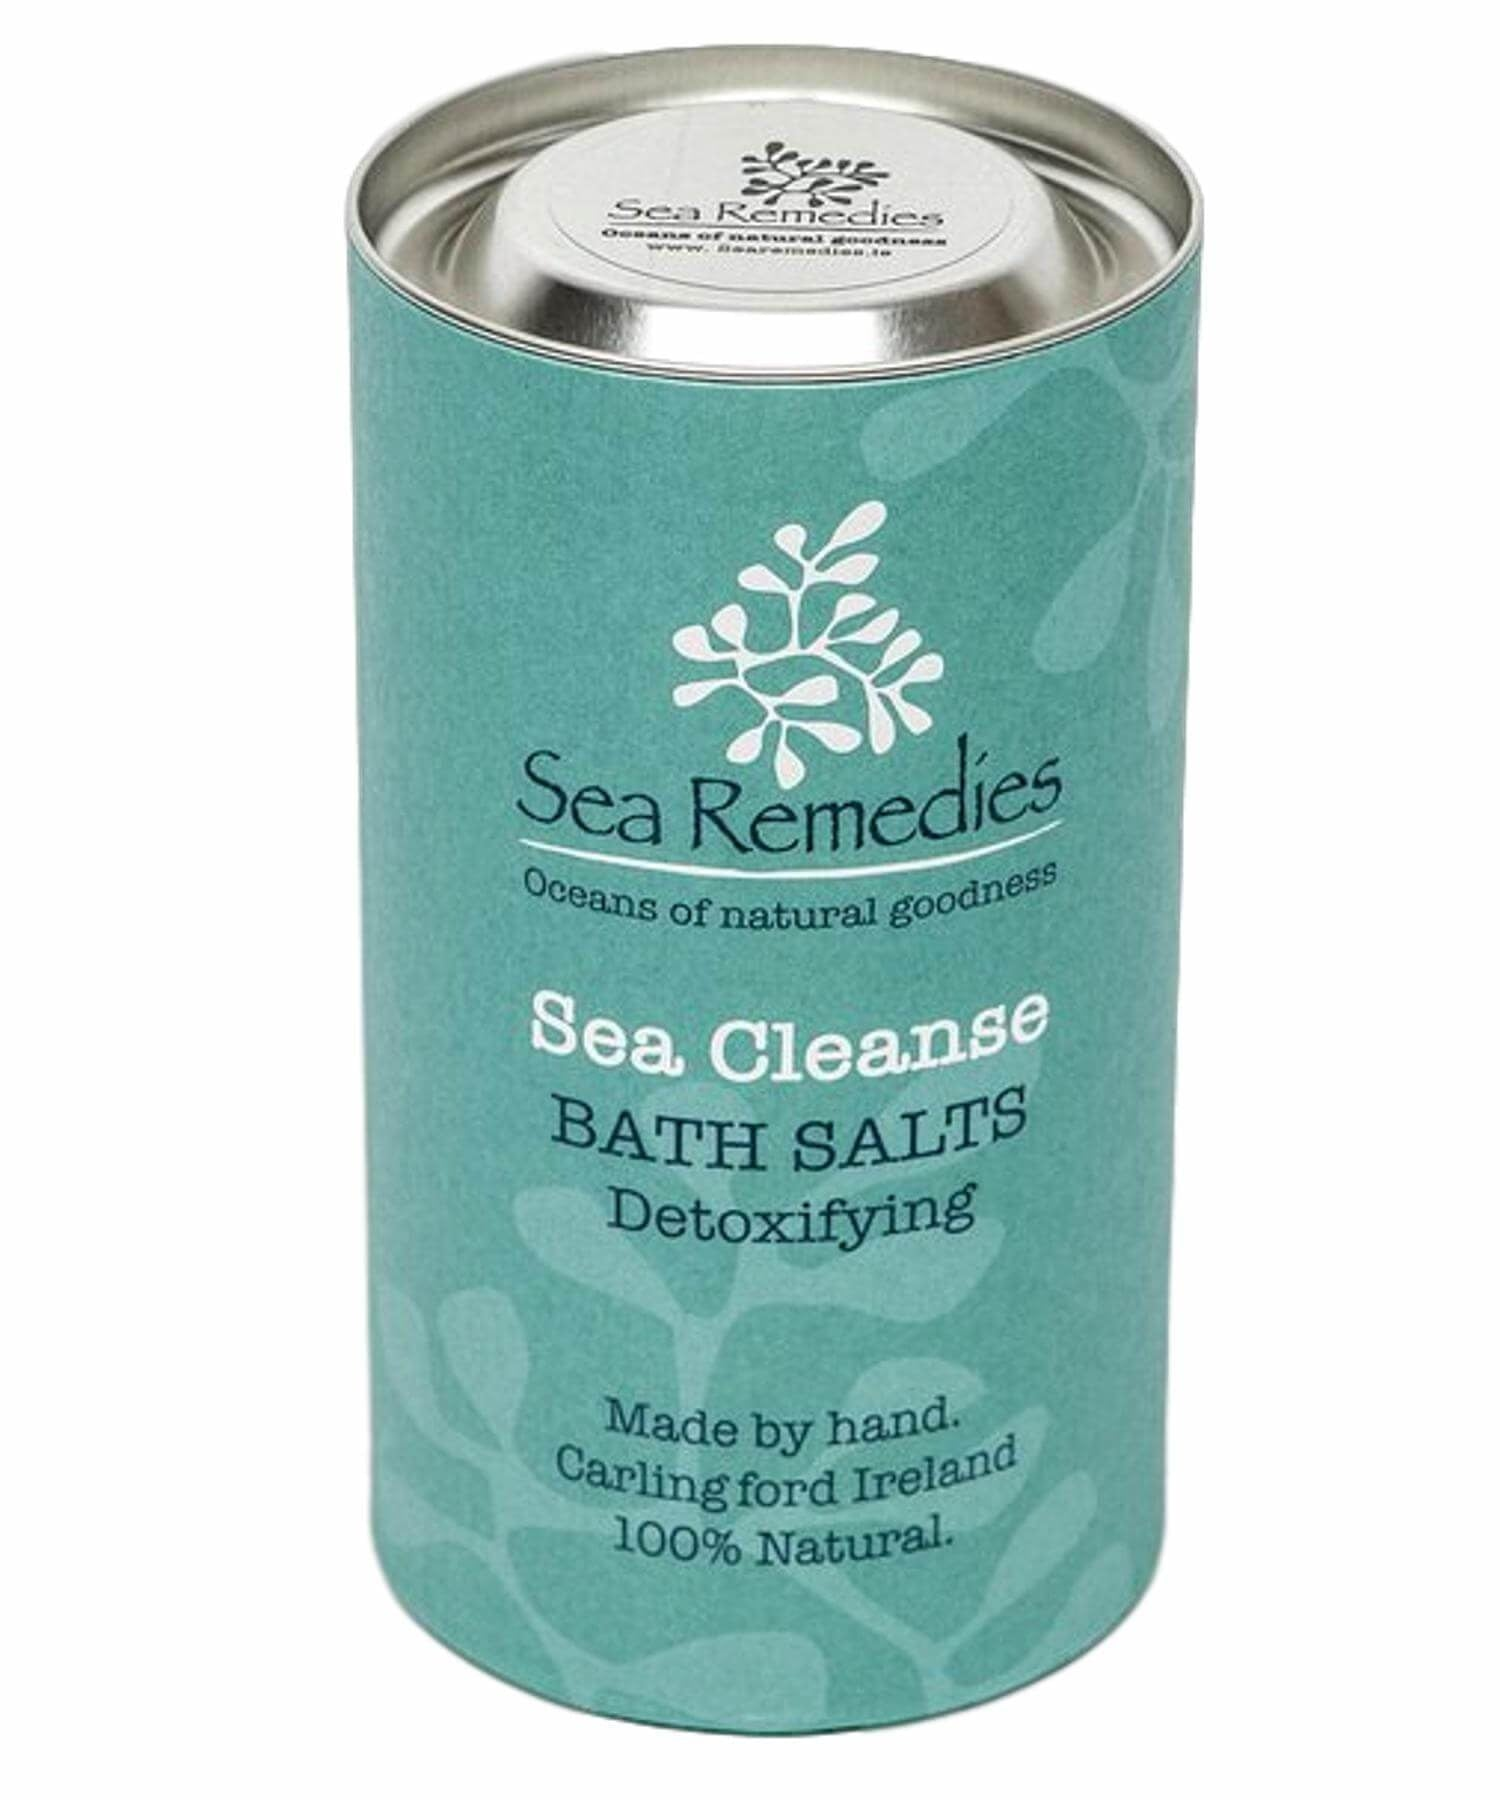 Bath Salts - Cleanse - [Sea Remedies] - Skincare & Beauty - Irish Gifts